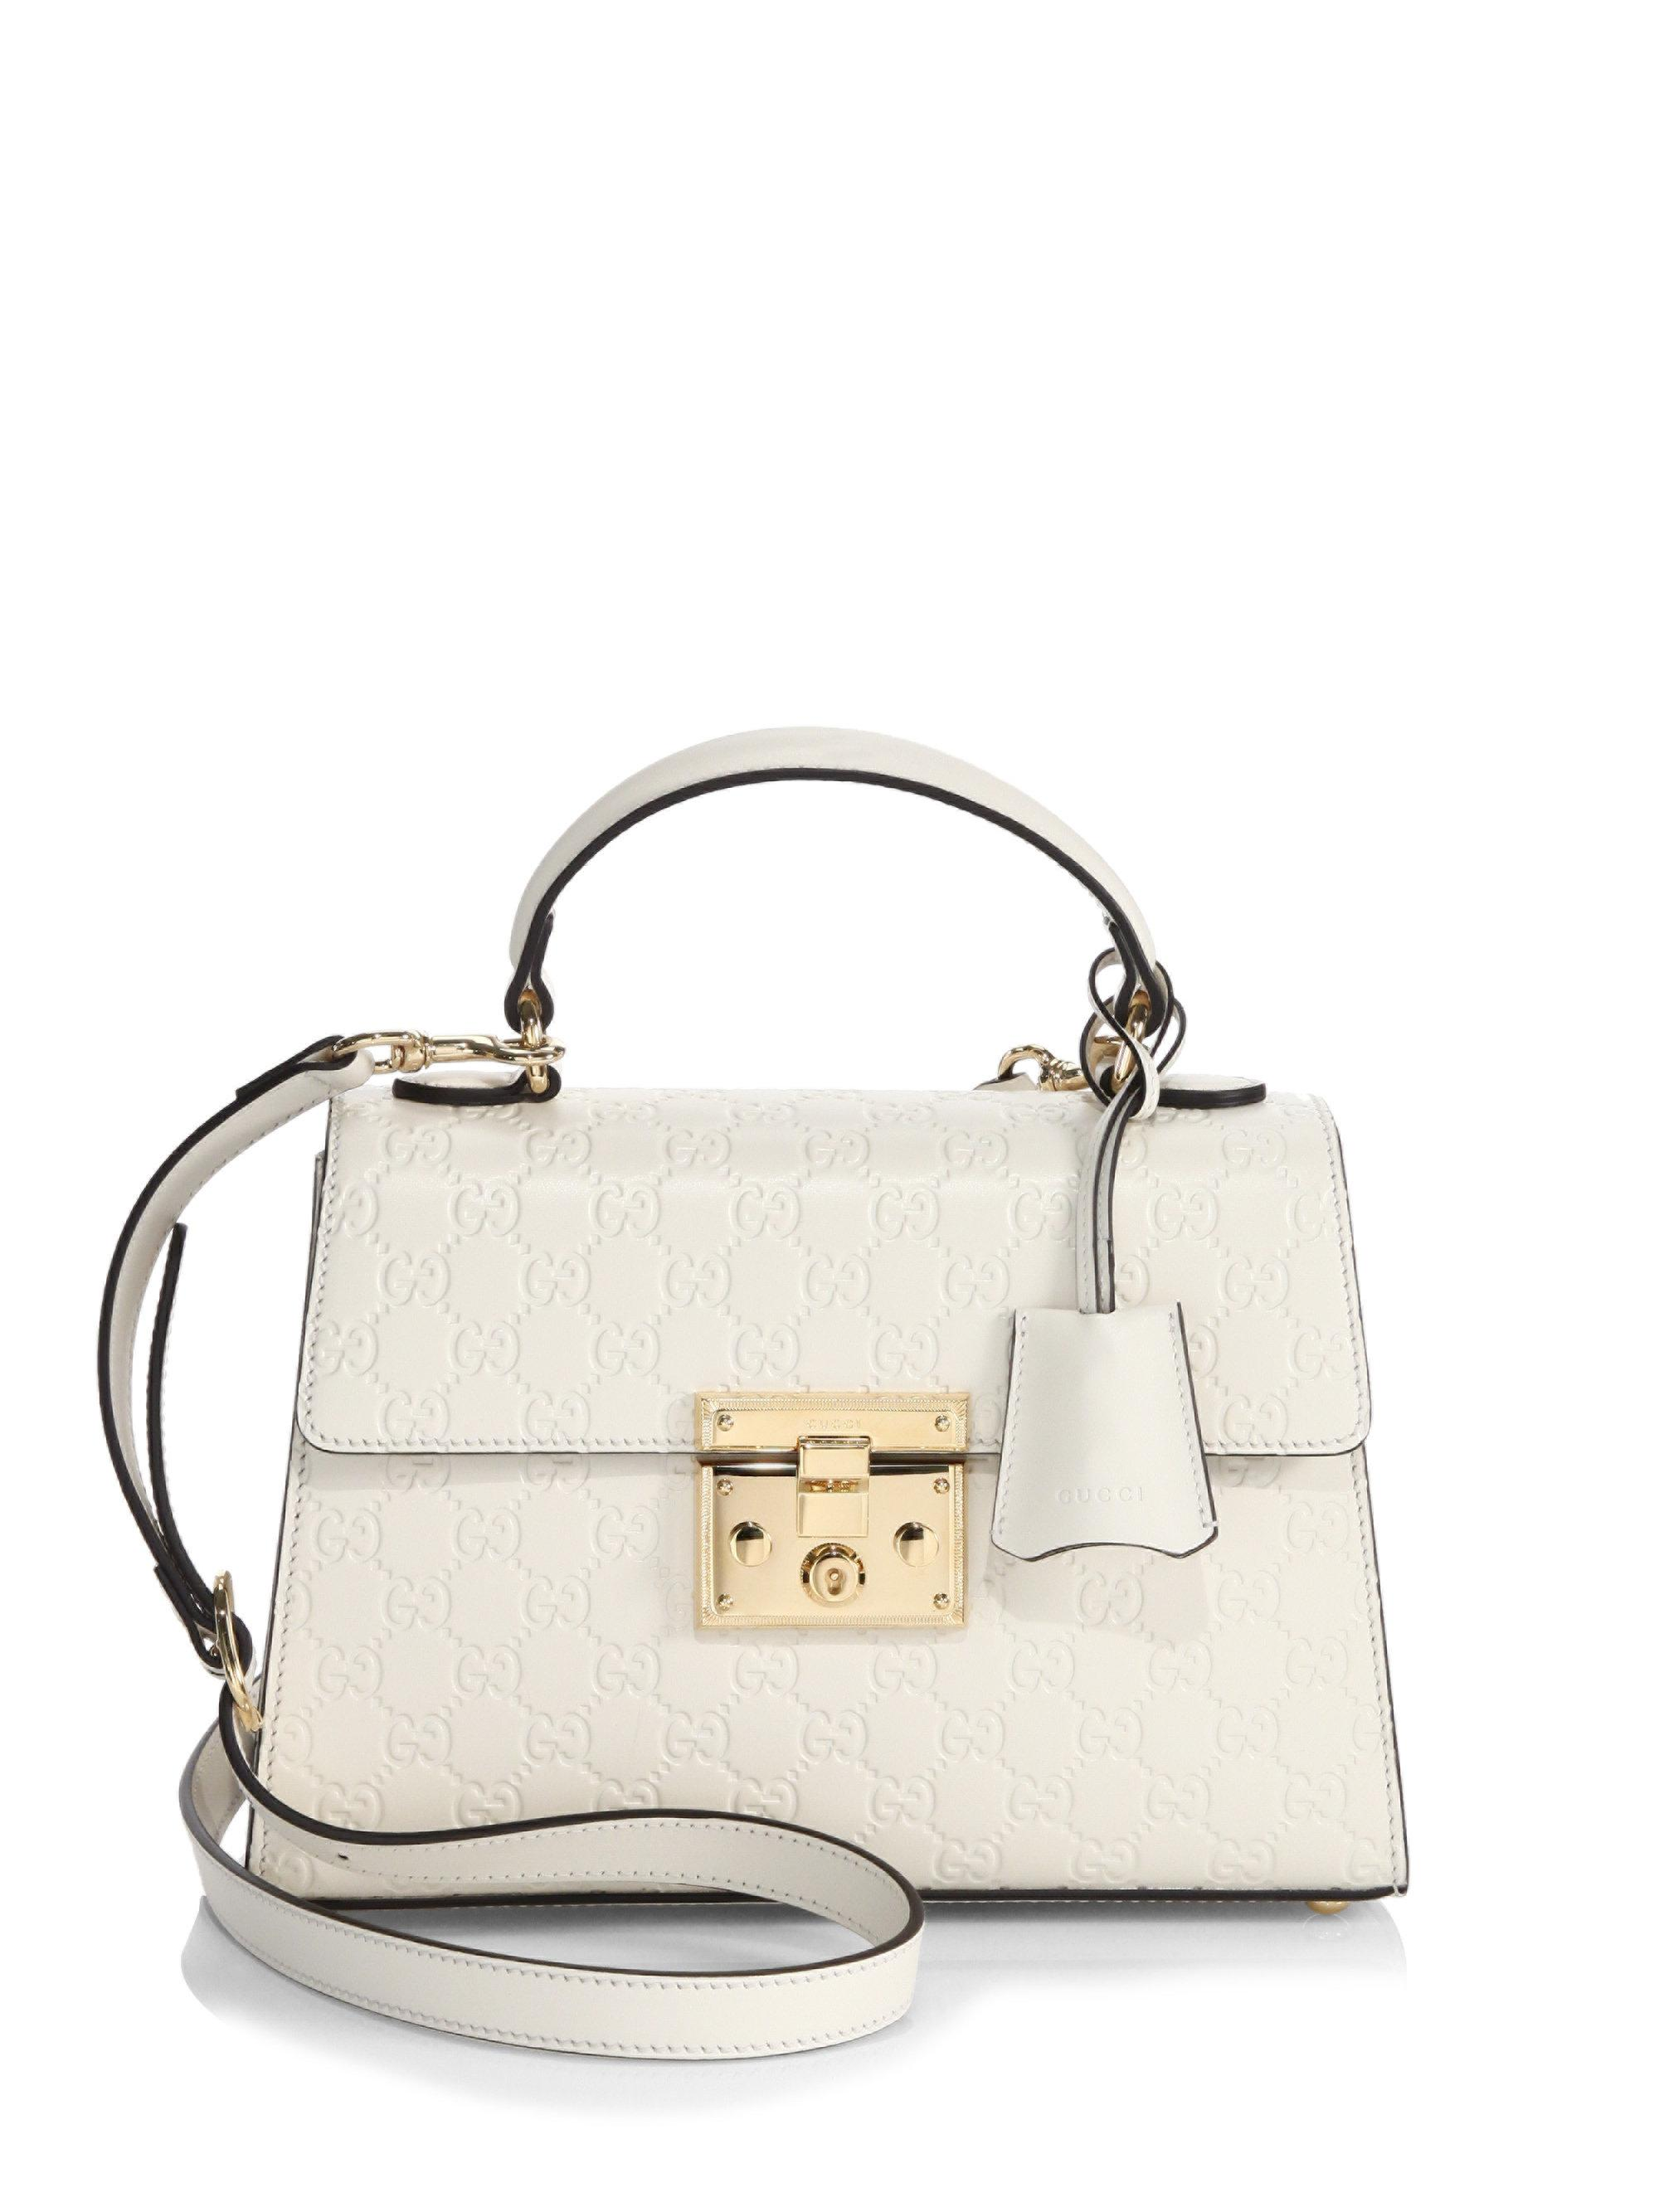 02d94eb988af57 Gucci Padlock Small Gg Leather Top-handle Bag in White - Lyst